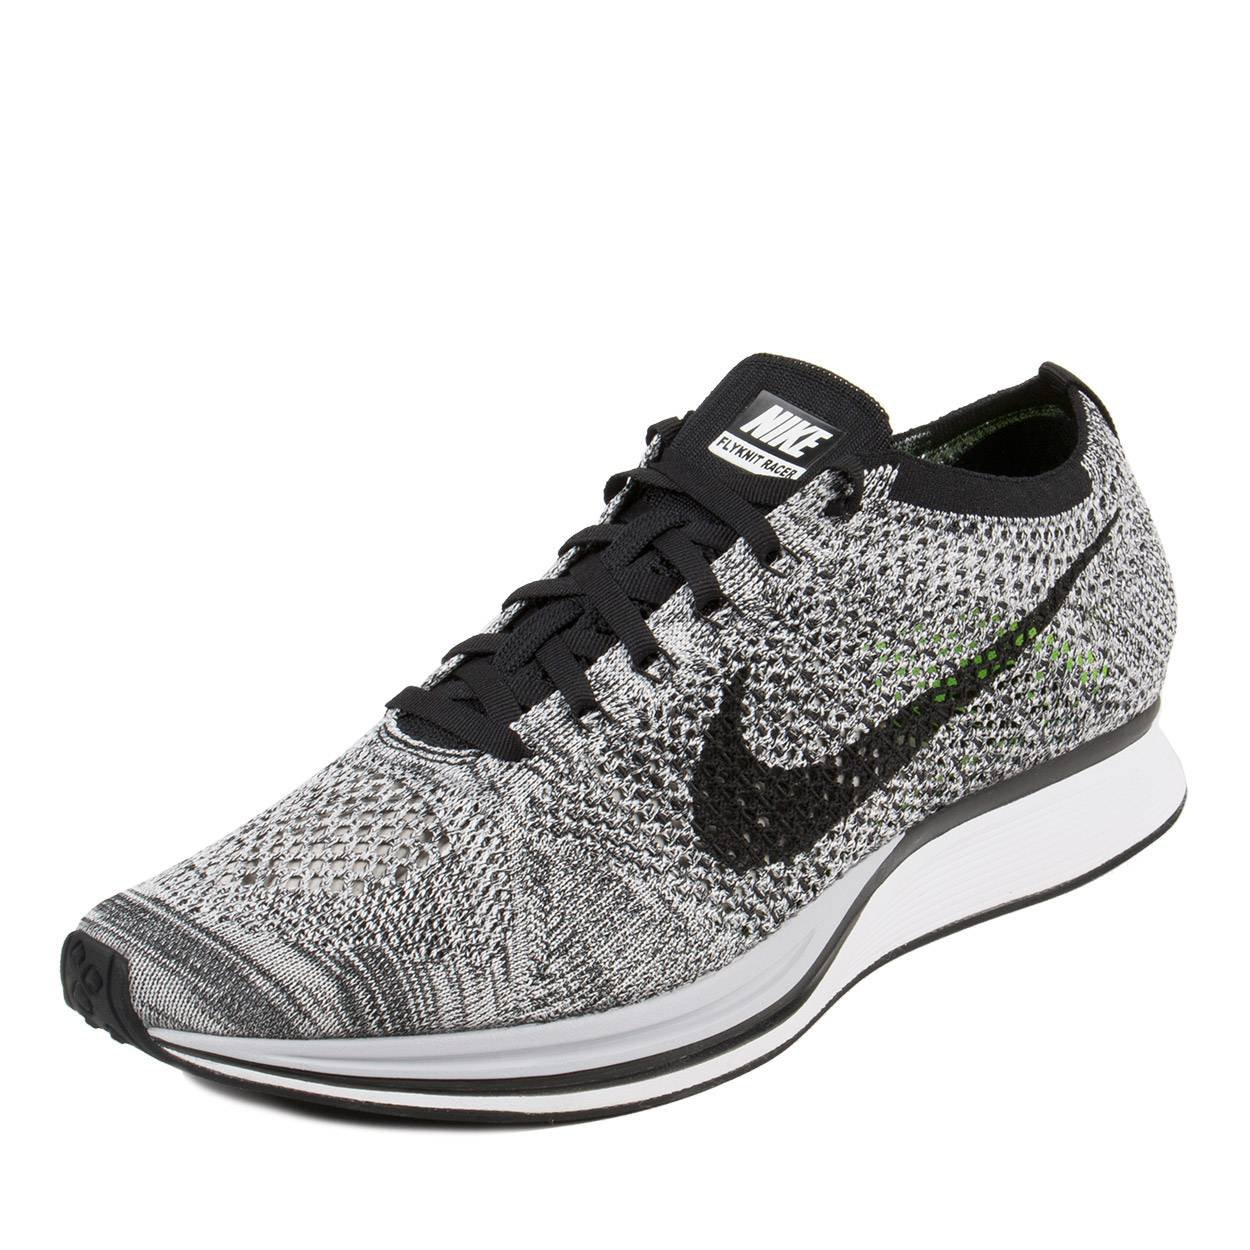 03769c24733 Galleon - NIKE Mens Flyknit Racer White/Black-Volt Fabric Size 7.5